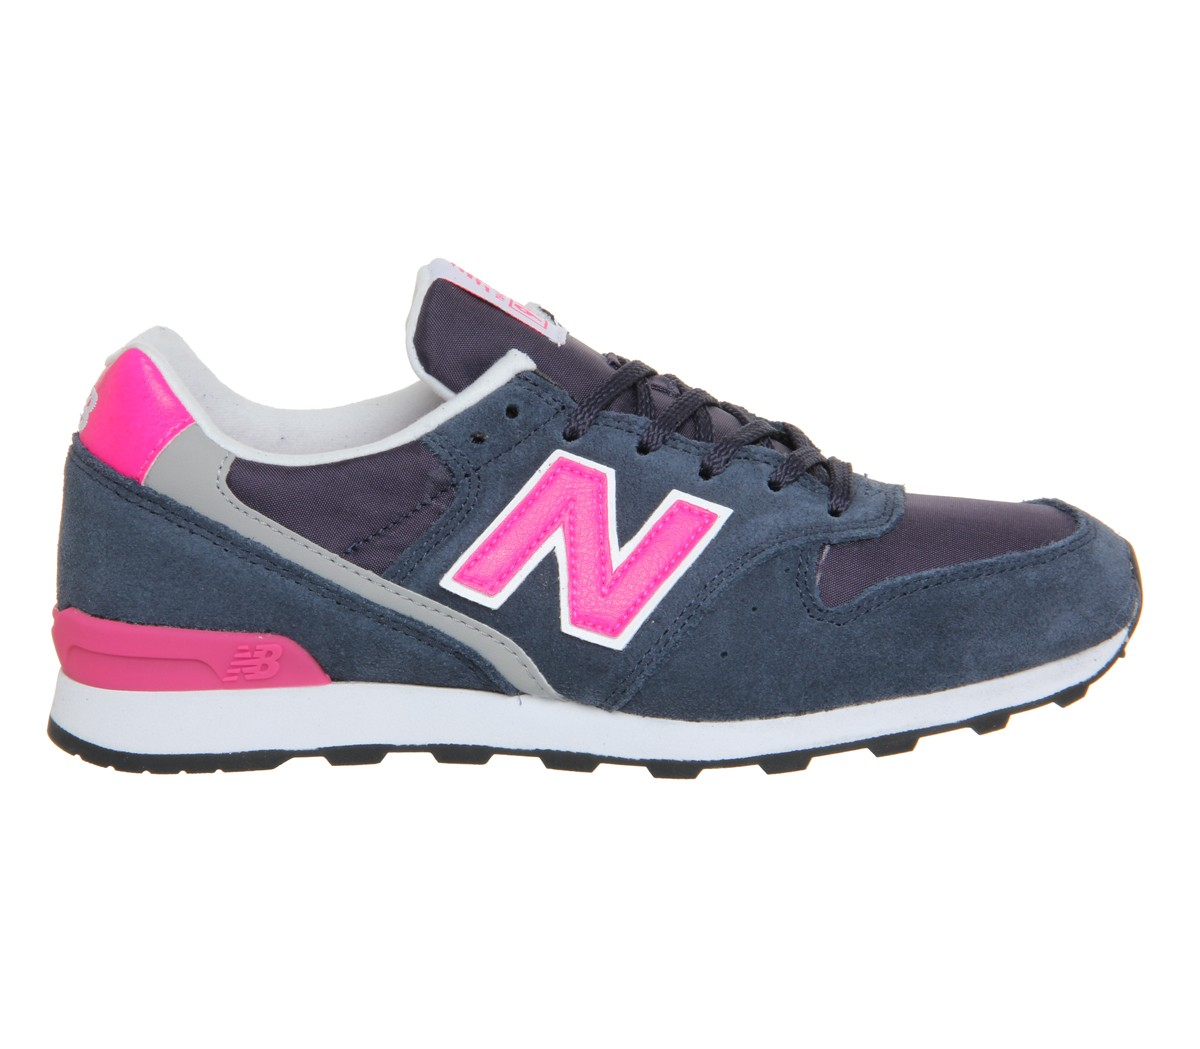 New Balance Wr996 Sneakers Pour Femme Marine Rose Lueur